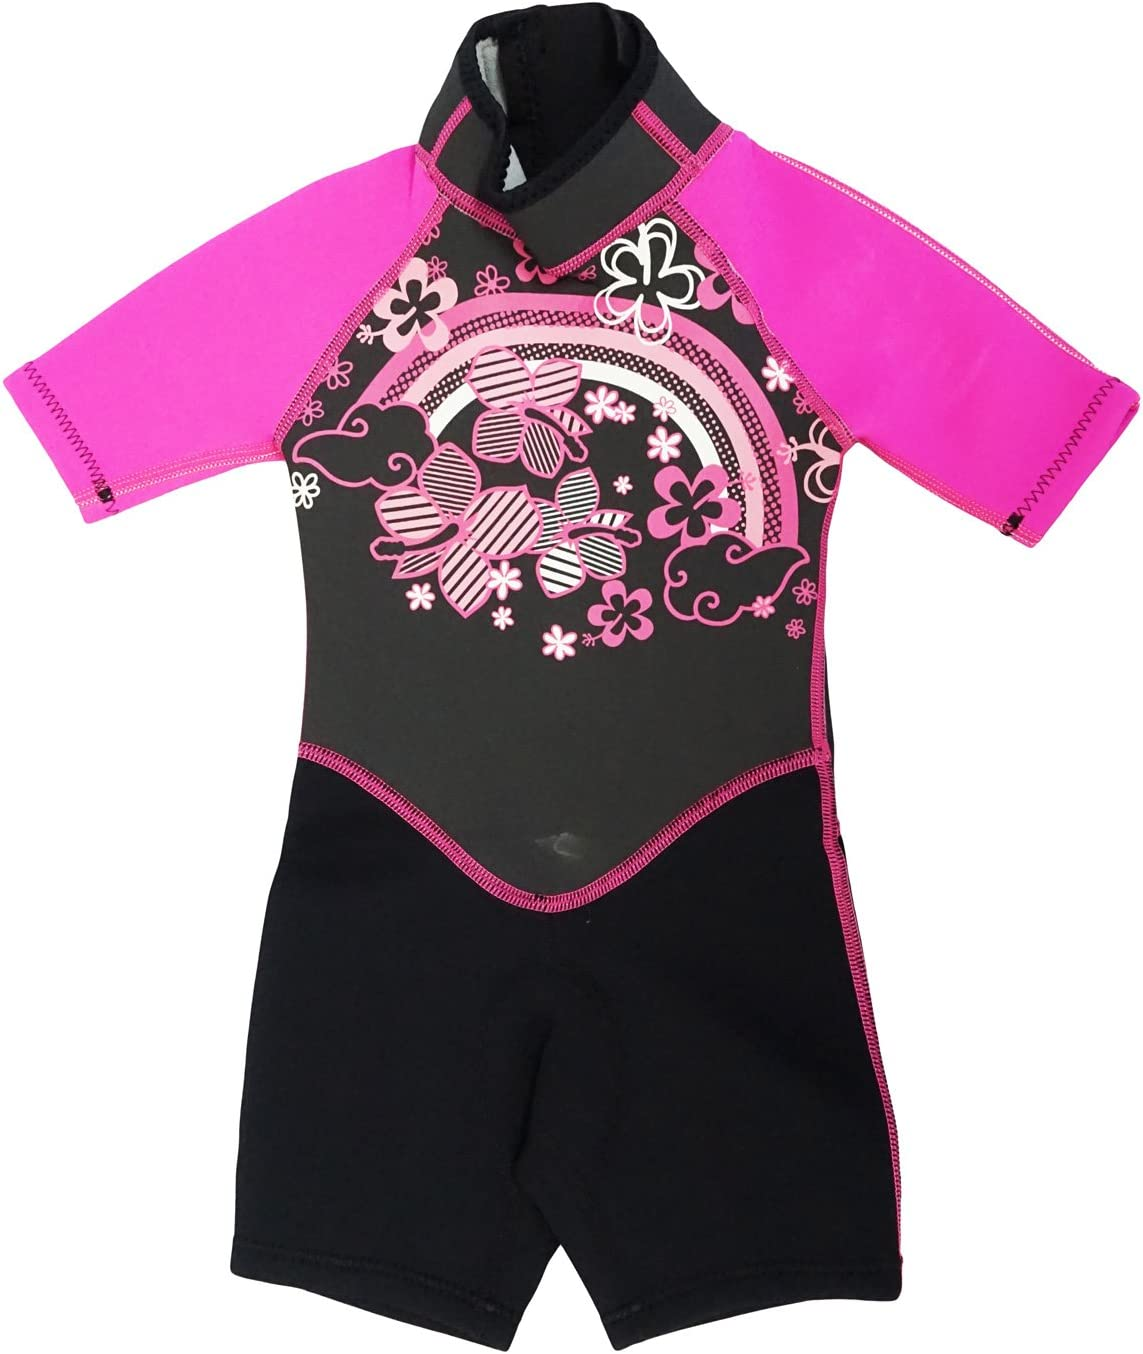 Kiddi Choice Limited time trial price Kids 2.5mm Neoprene New product type Black Pink Short Wetsuit Sleeve